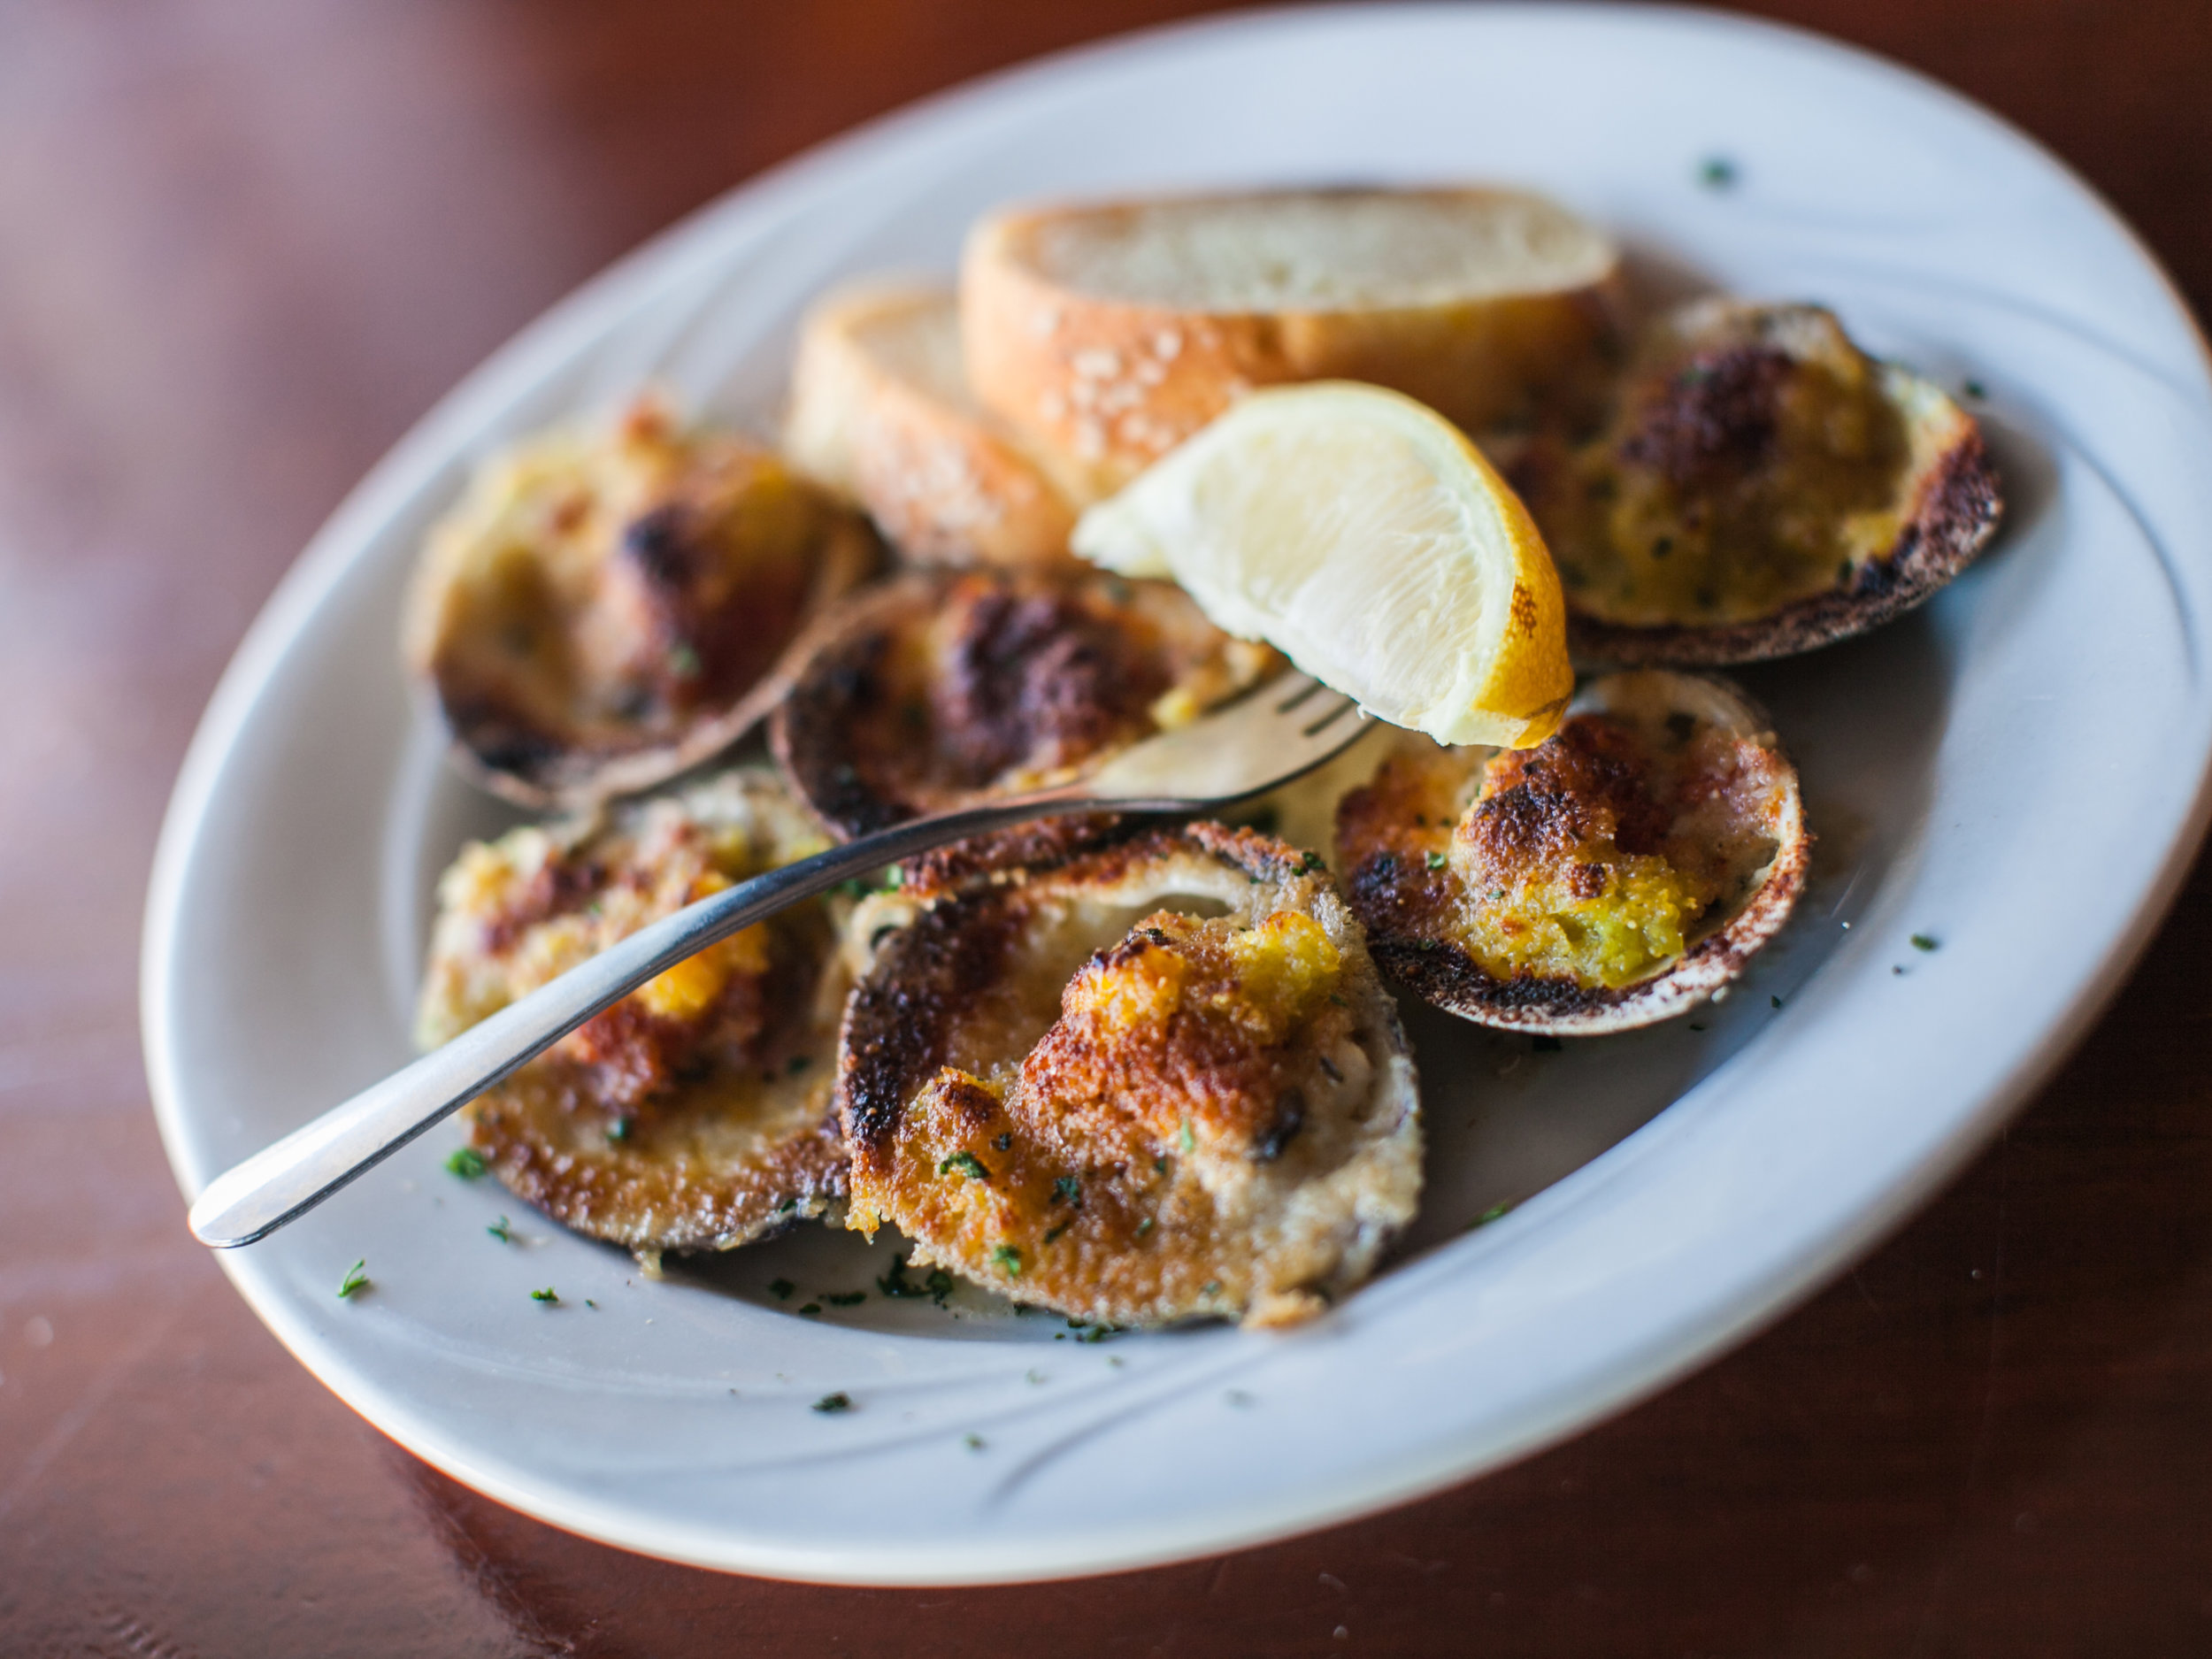 The Baked Garlic Clams is a staple at Mud City, the Black Whale and Ship Bottom Shellfish. Photo: Ann Coen.